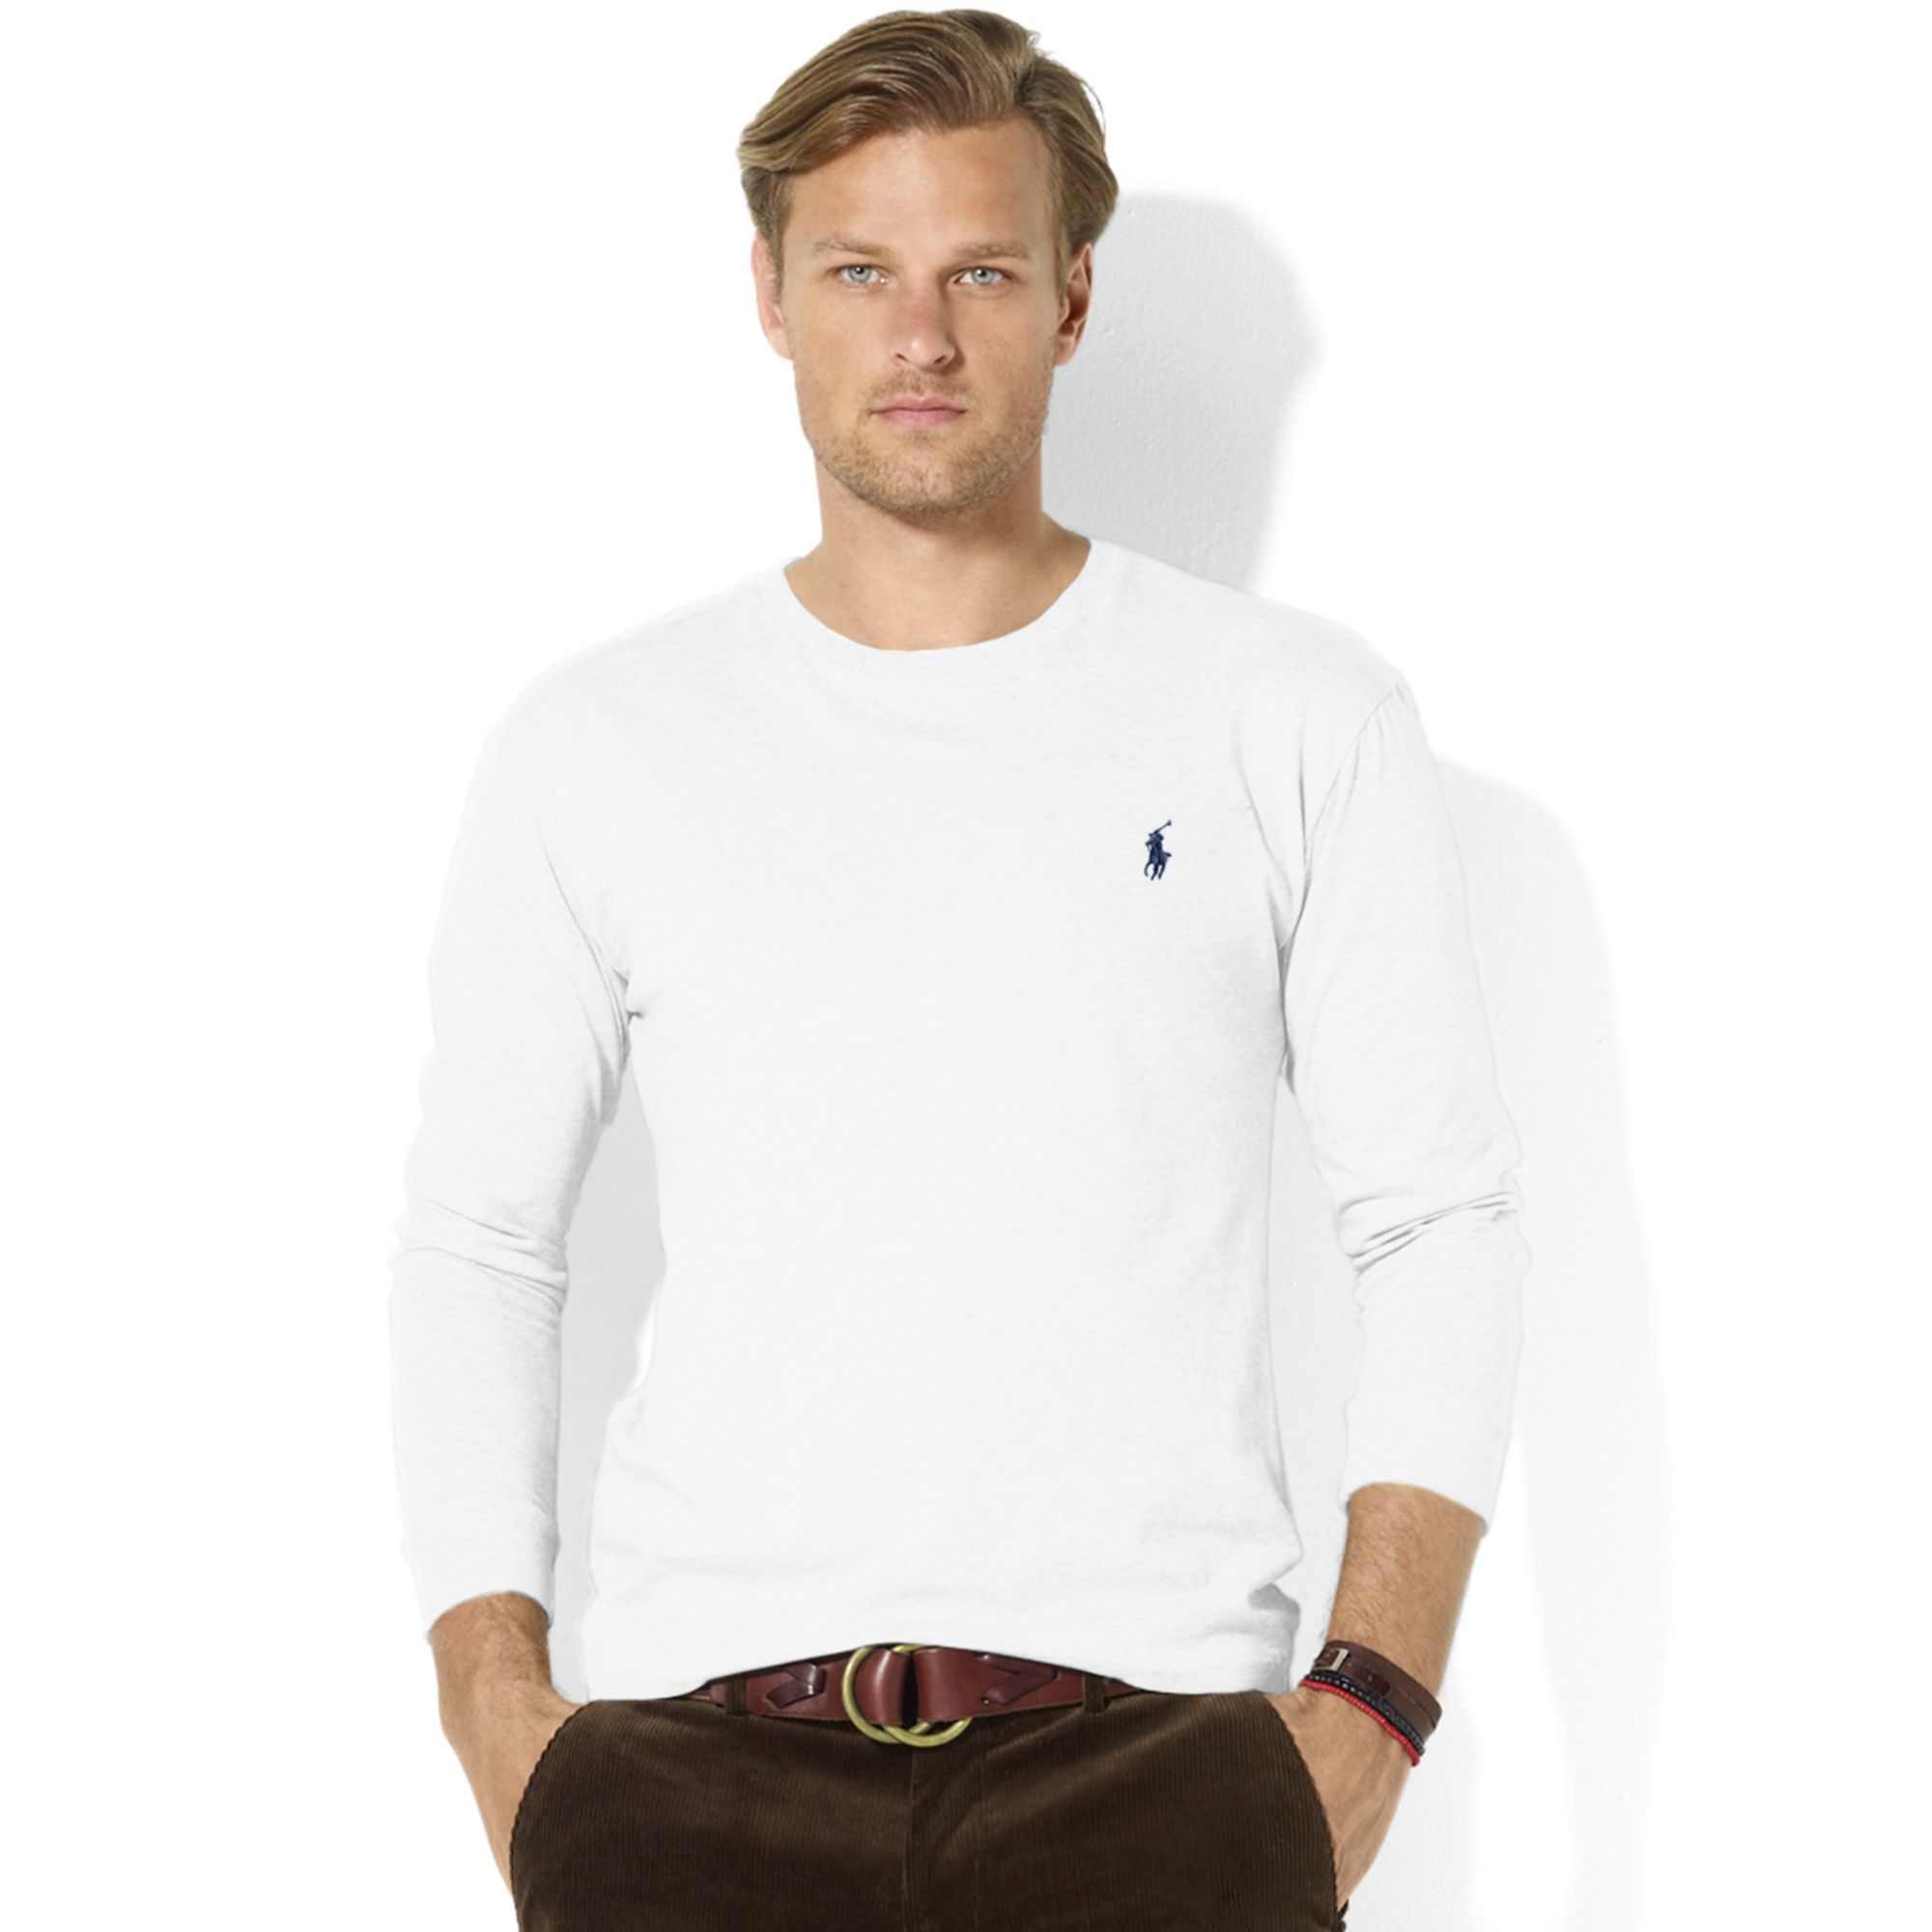 ralph lauren classic fit longsleeve cotton jersey pocket crew neck t shirt in white for men lyst. Black Bedroom Furniture Sets. Home Design Ideas